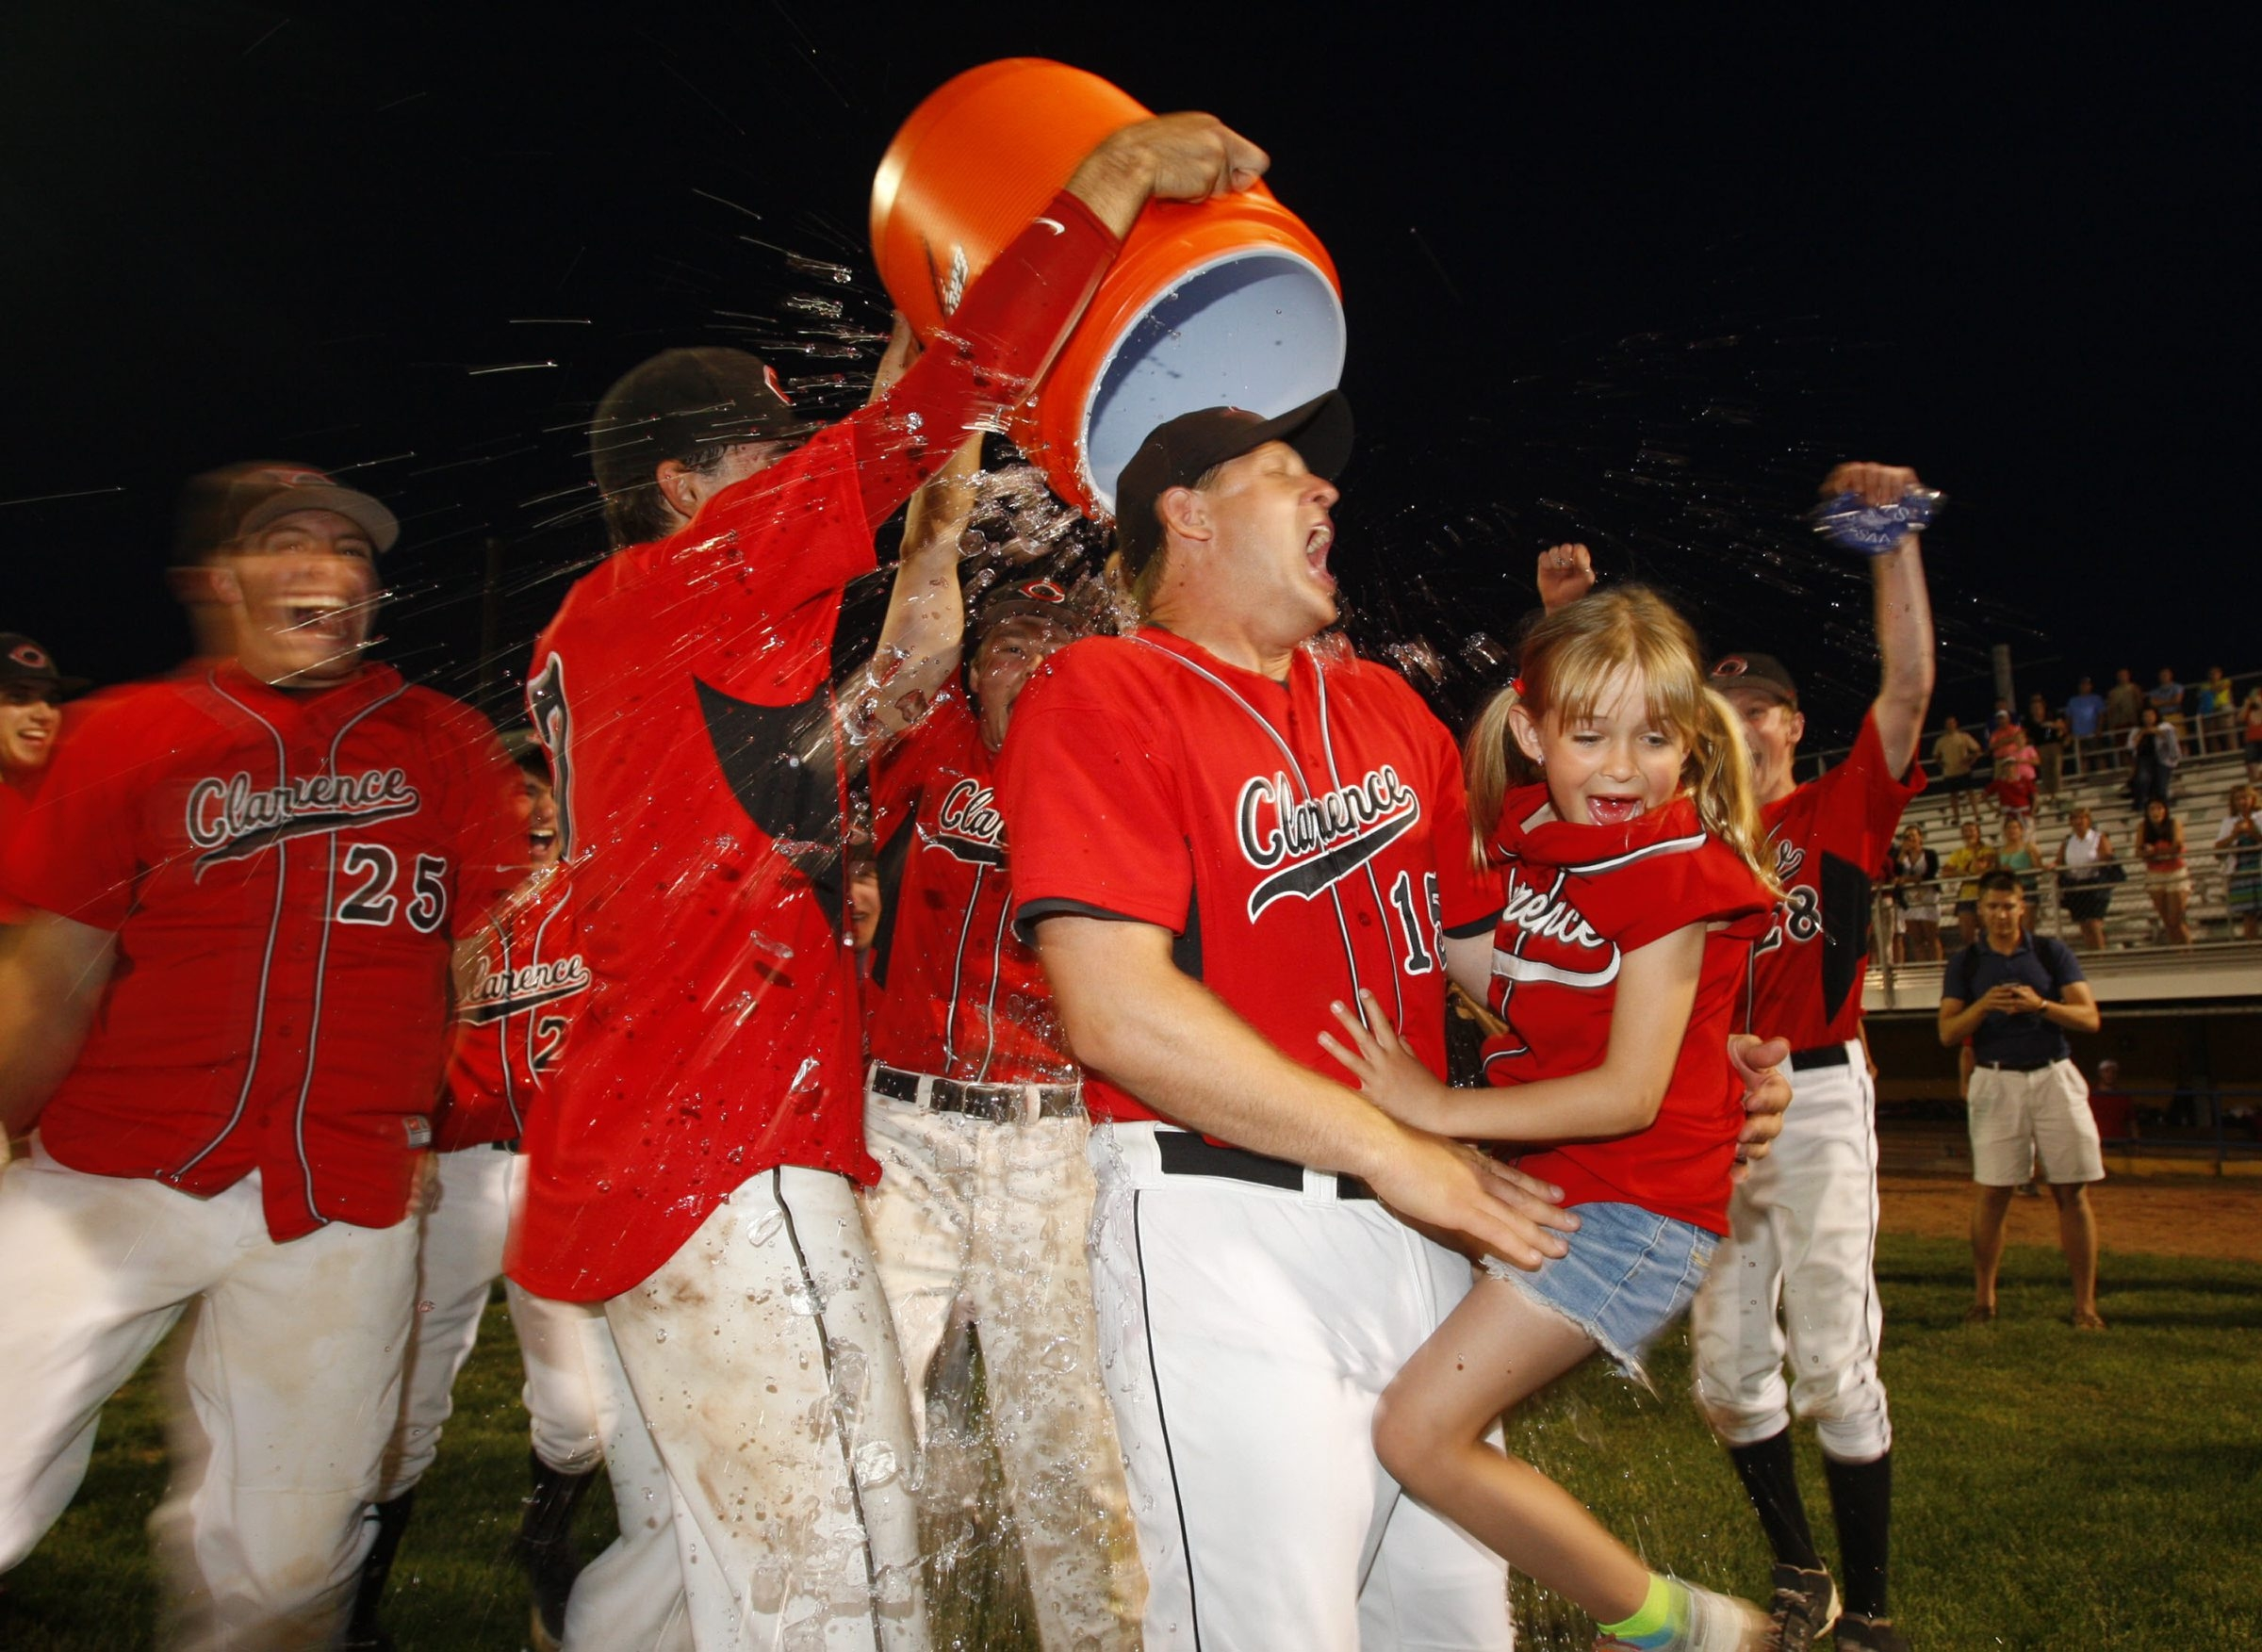 Clarence coach Dave Smith holds his daughter Kiersten as his team dumps water on him to celebrate the Red Devils' 2-1 win over Lancaster.